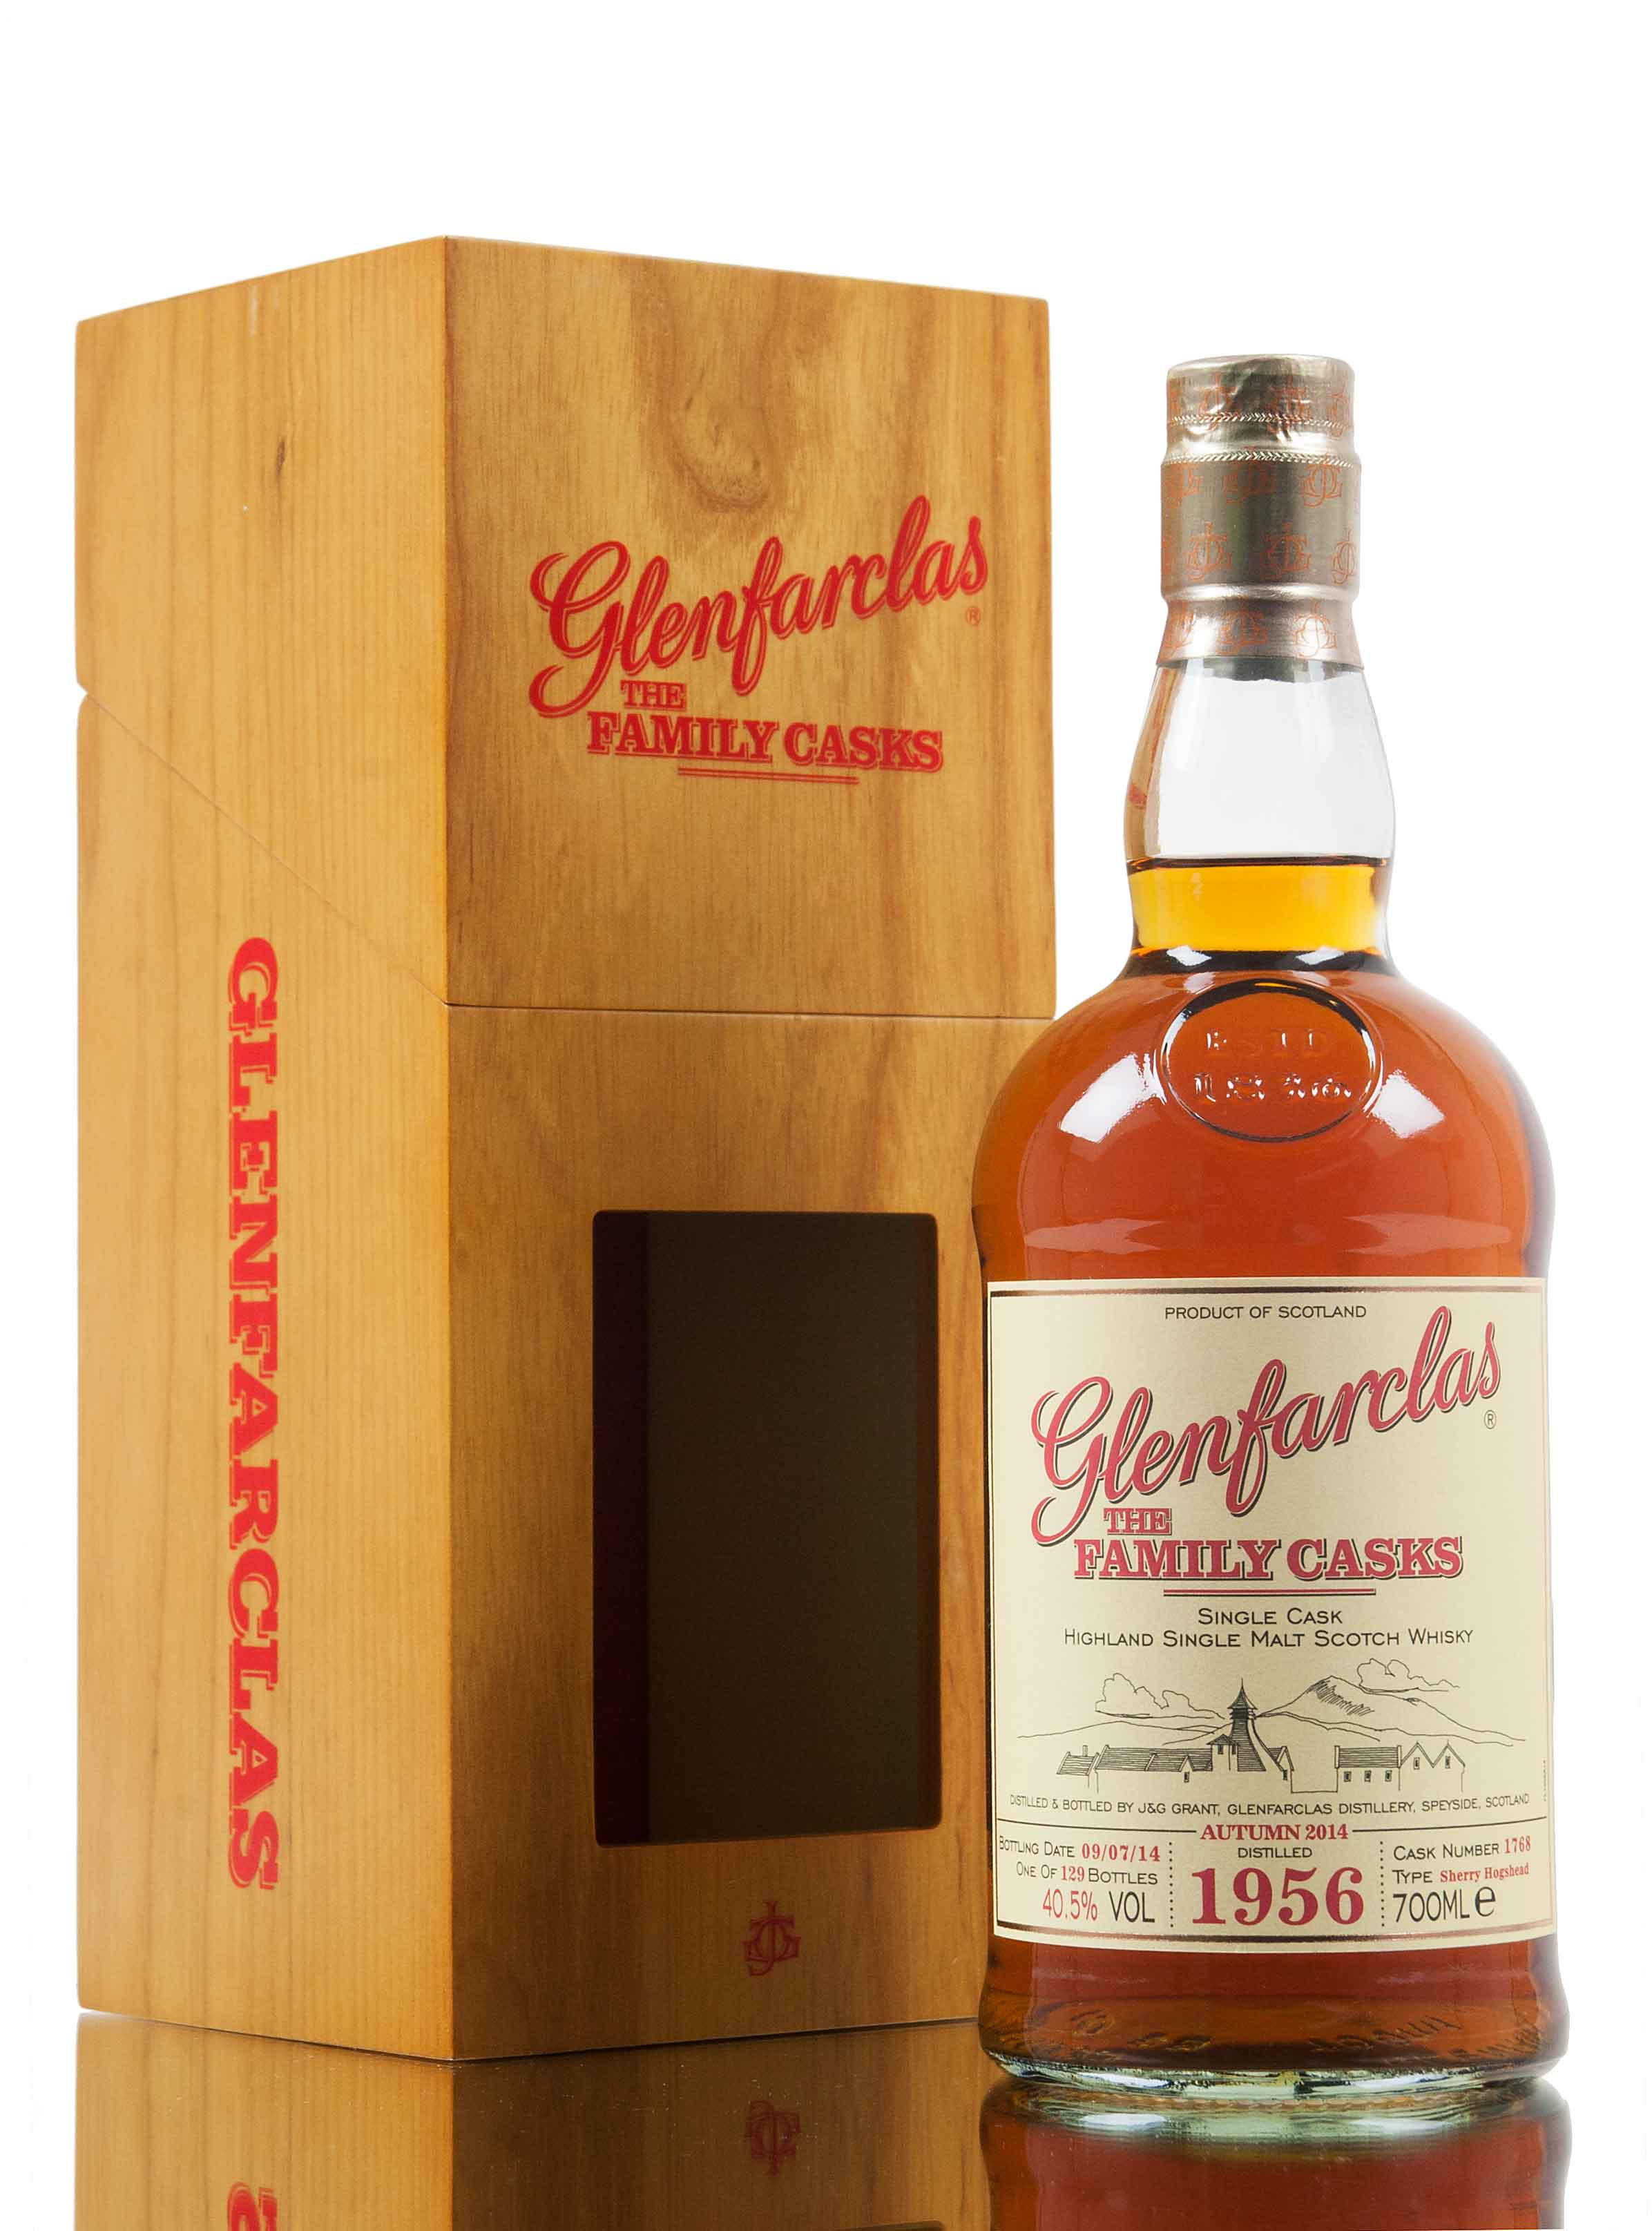 Glenfarclas 1956 / Family Casks Autumn 2014 / Cask #1768